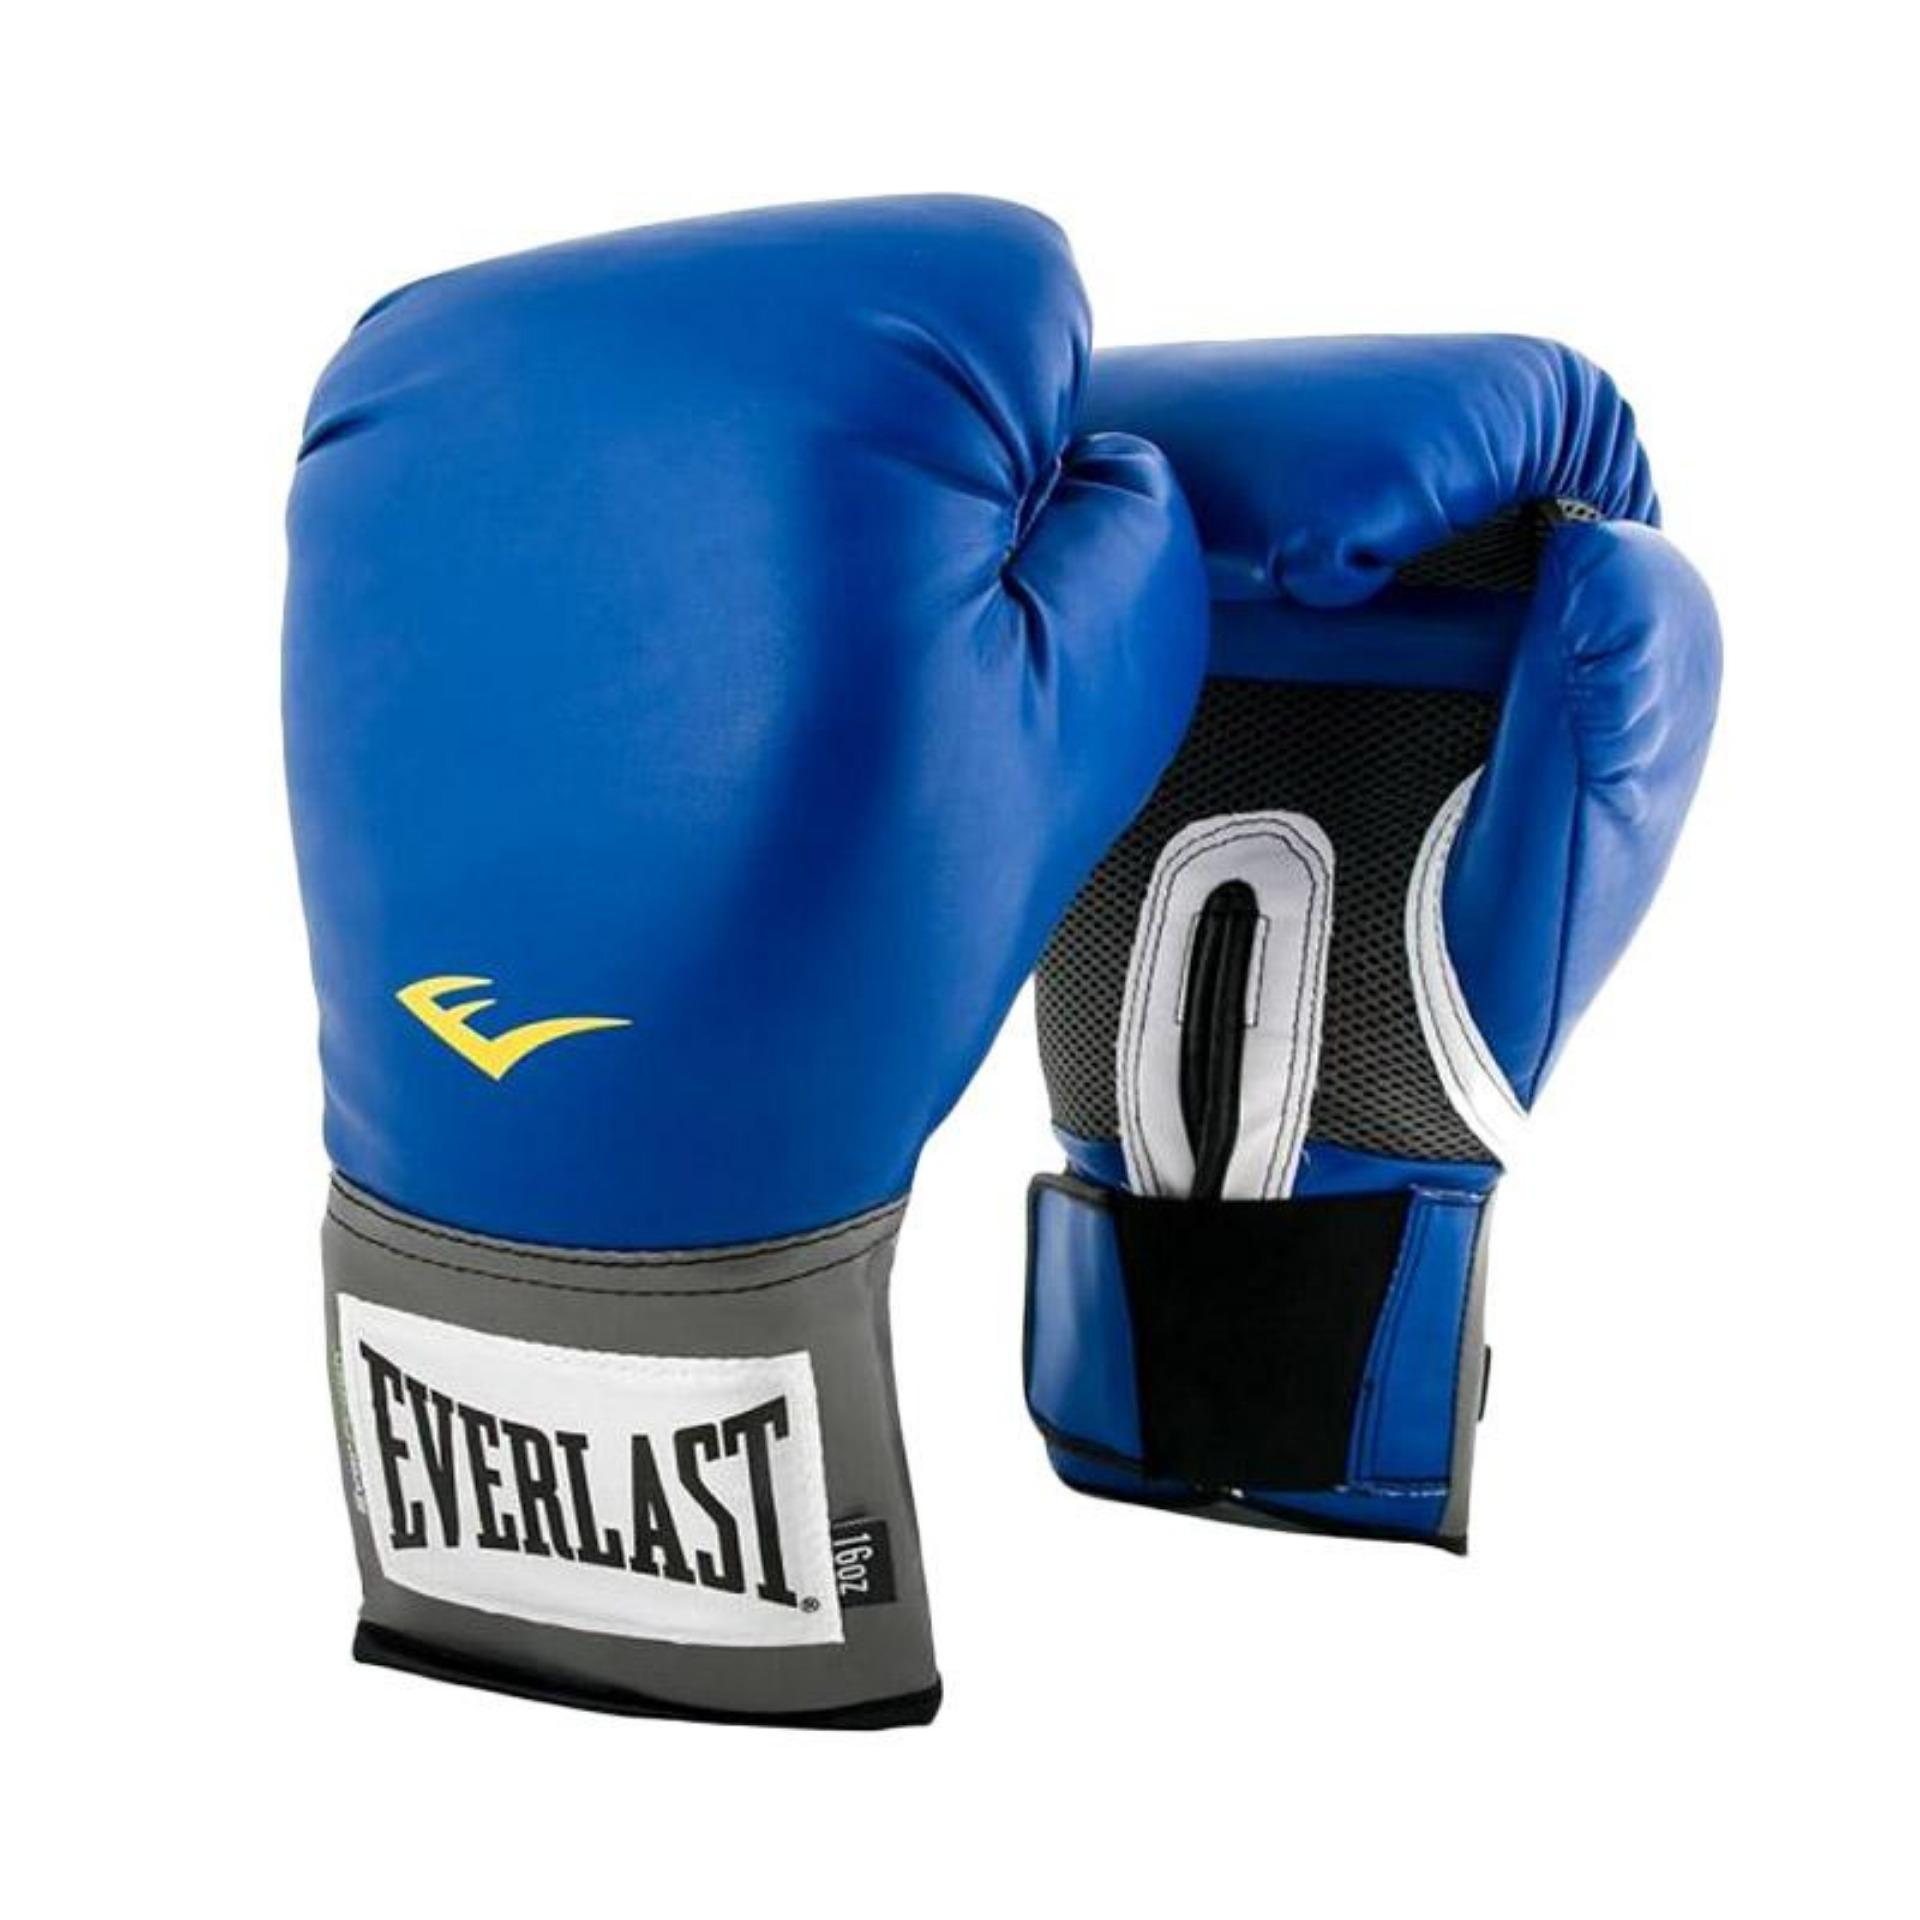 Everlast Pro Style Training Glove 14 Oz - Blue By Everlast Official Store.